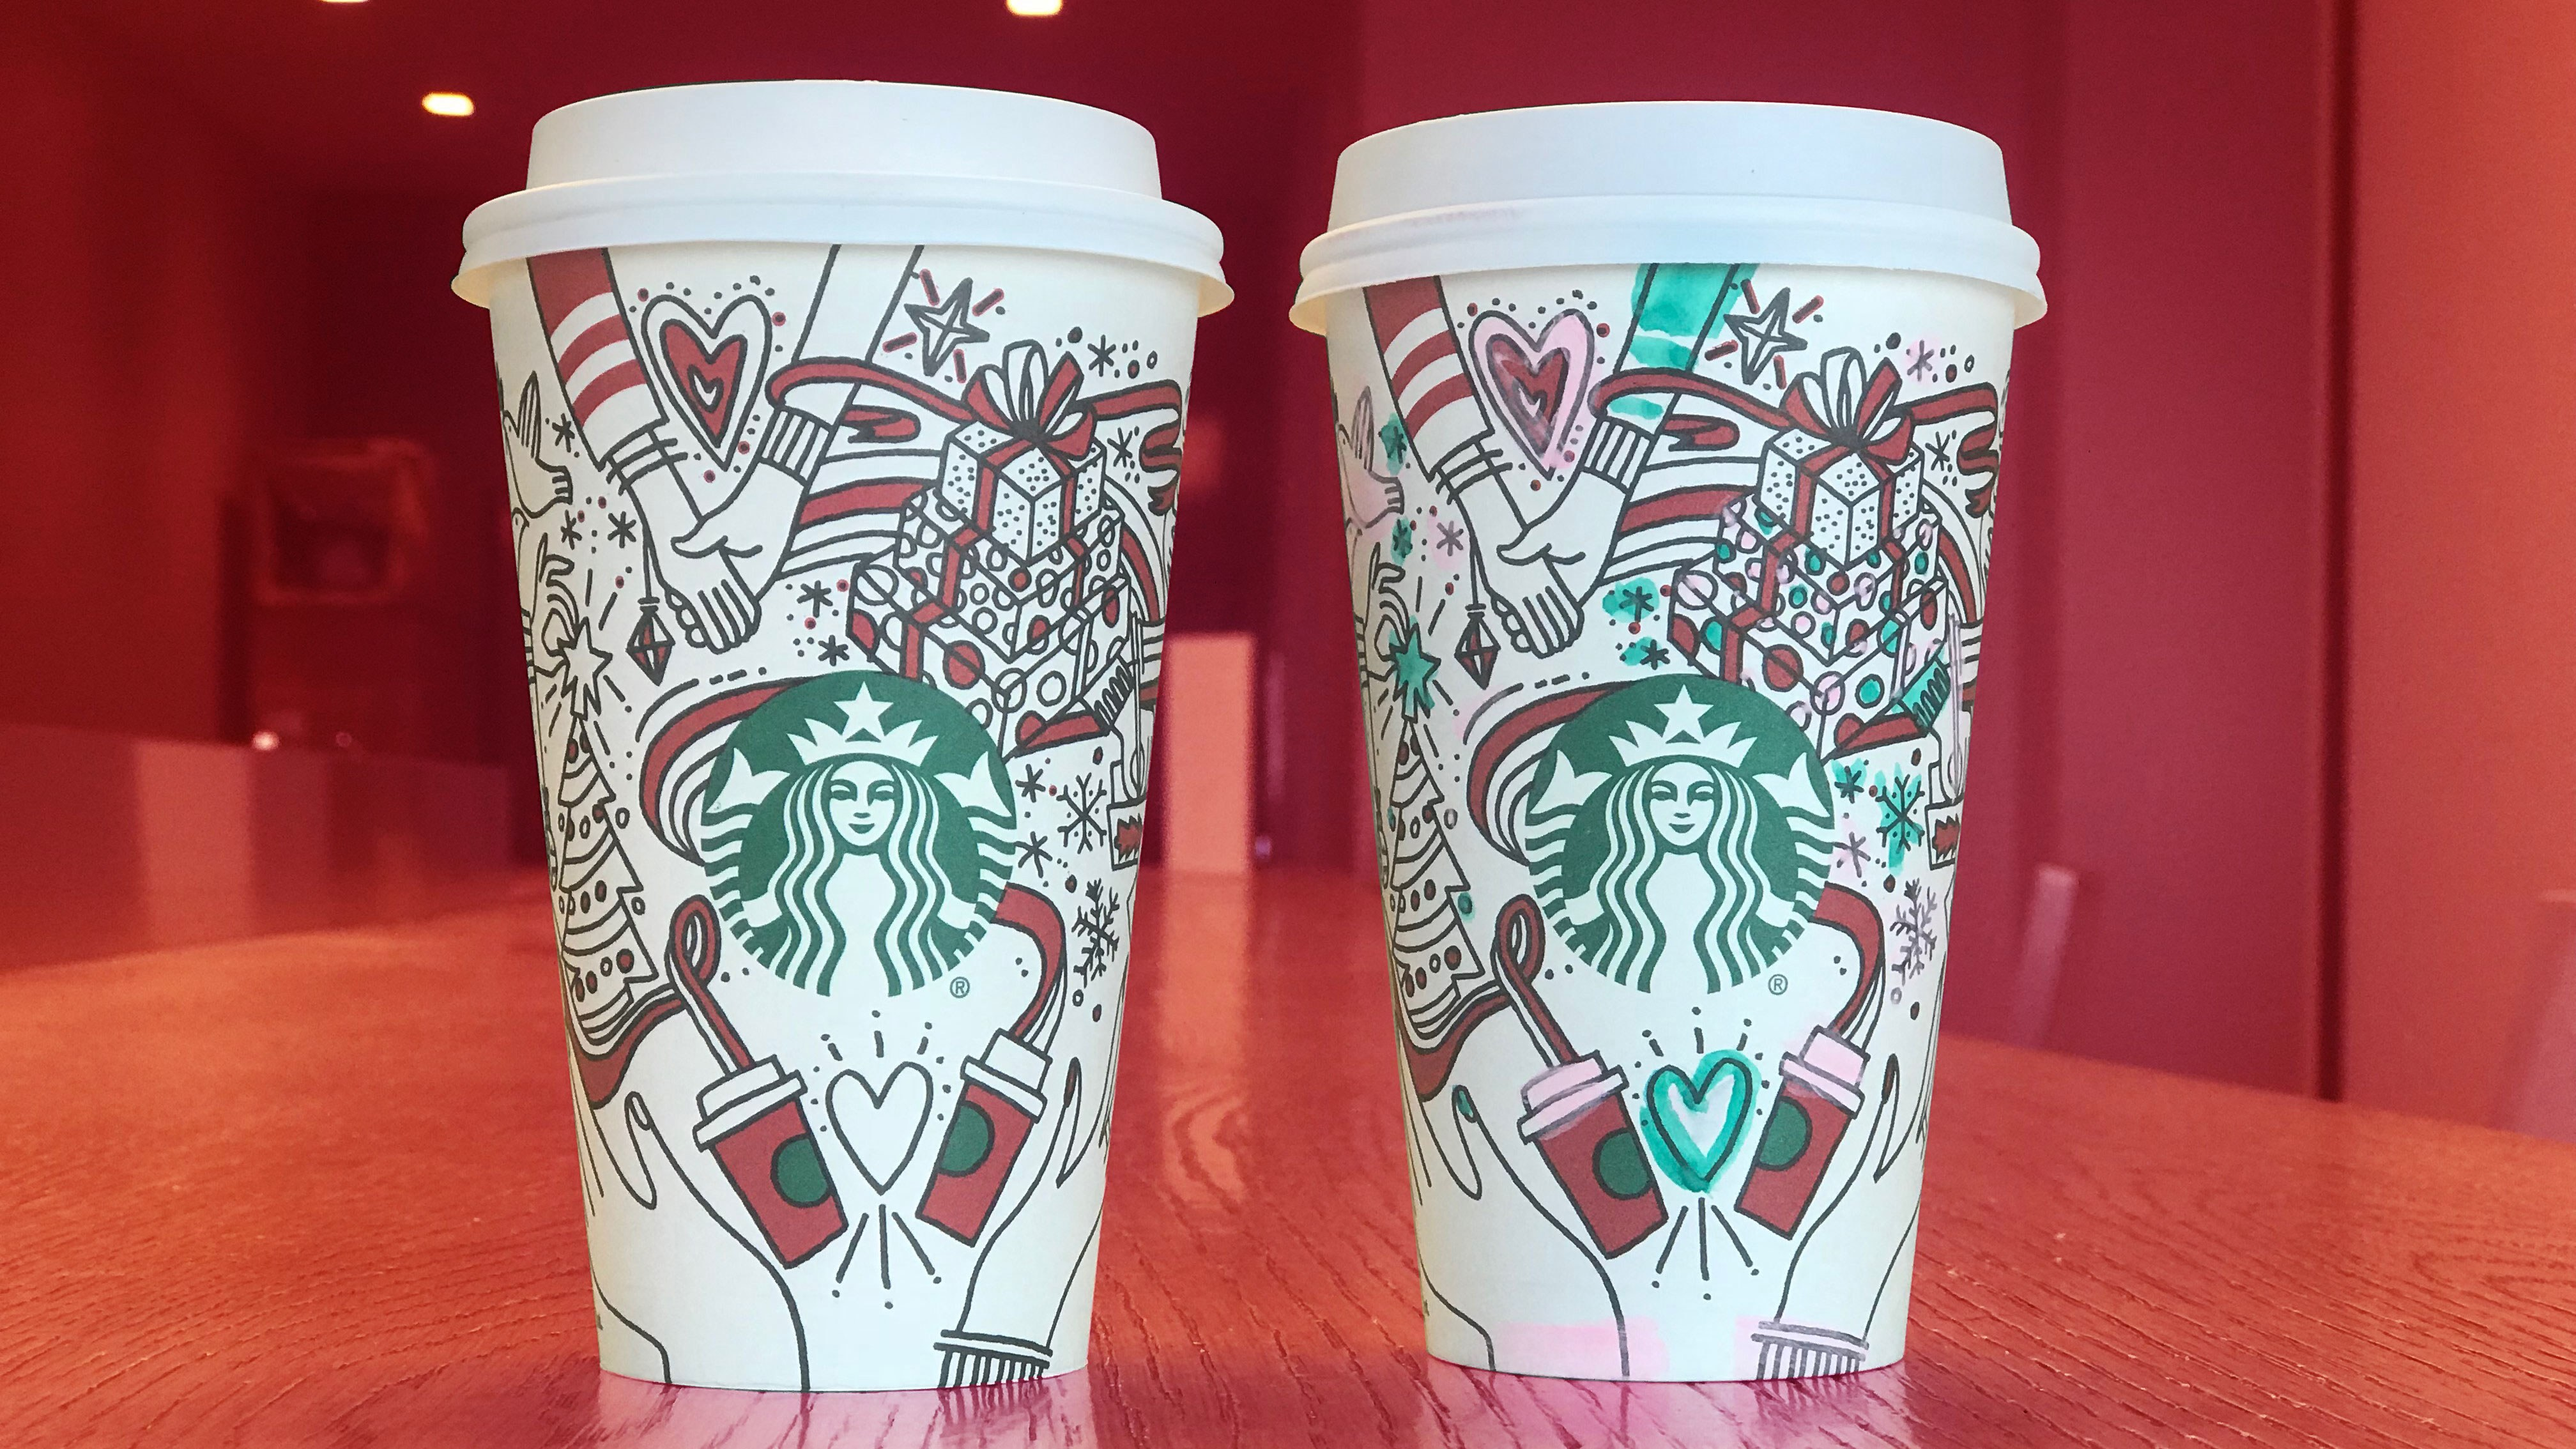 Cute Coffee Cups Wallpapers Cute Starbucks Wallpapers With Holiday Cups Close Up Photo